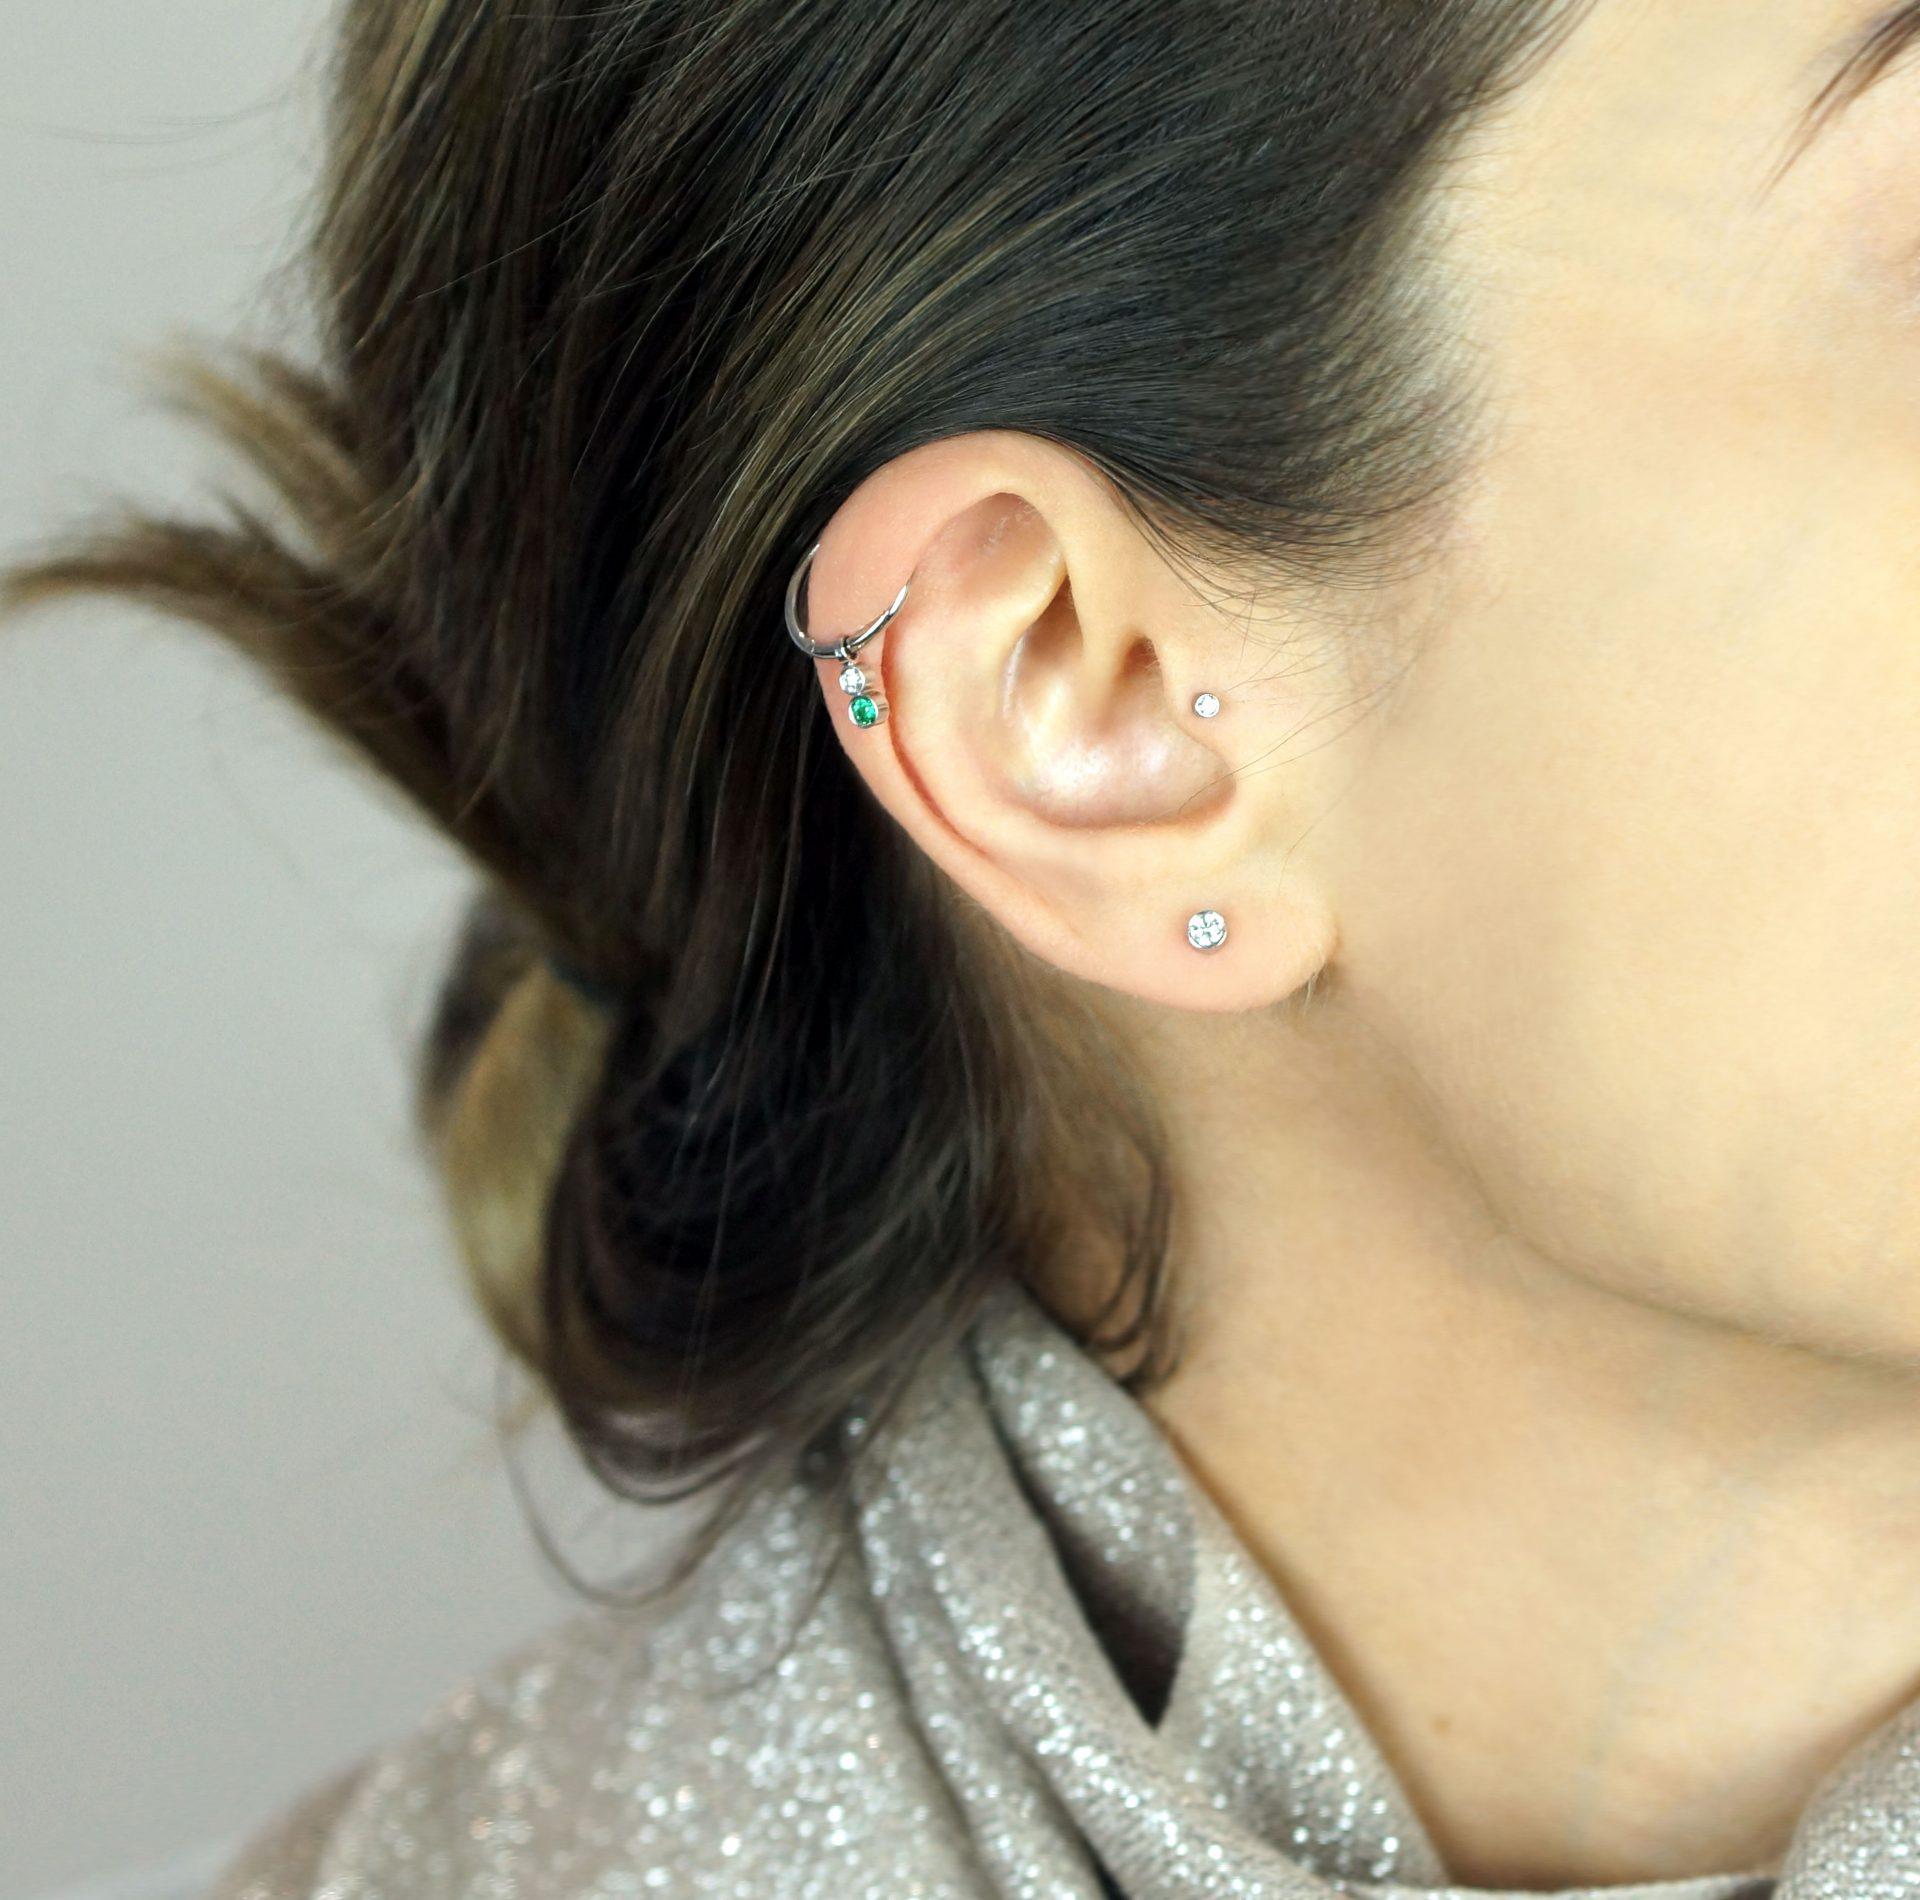 single-diamond-helix-stud-multiple-piercings-earrings